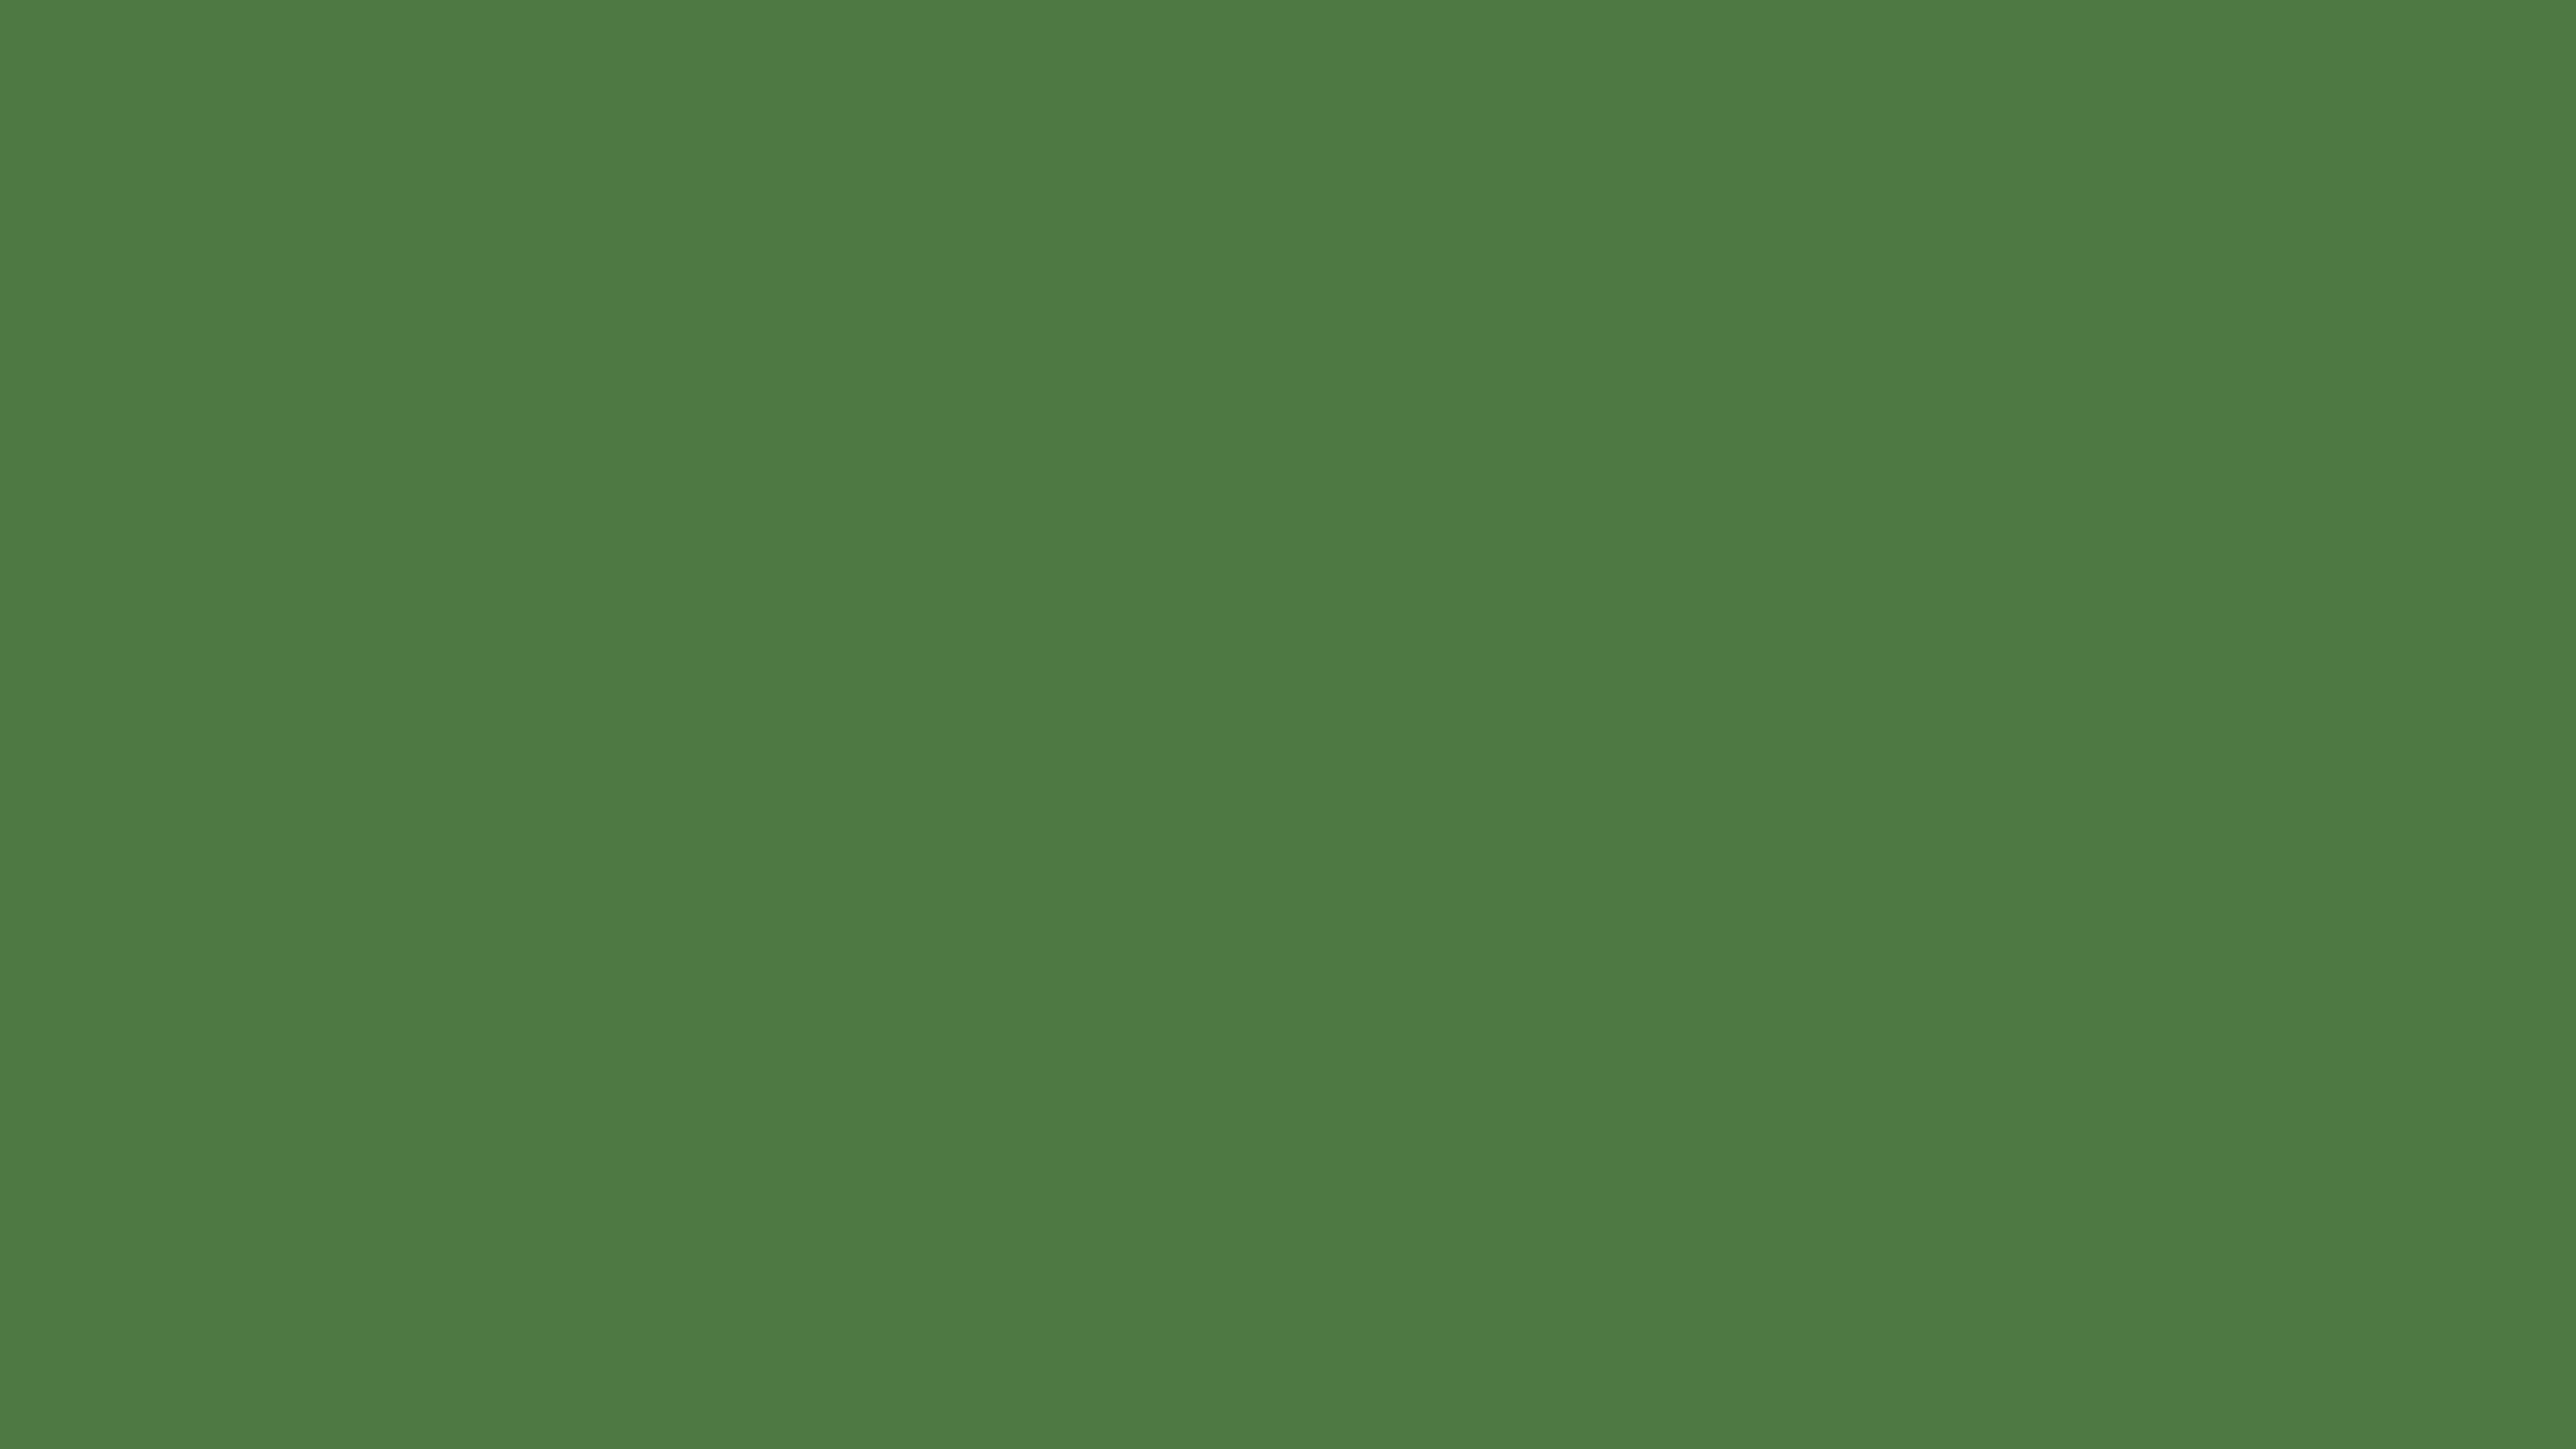 4096x2304 Fern Green Solid Color Background